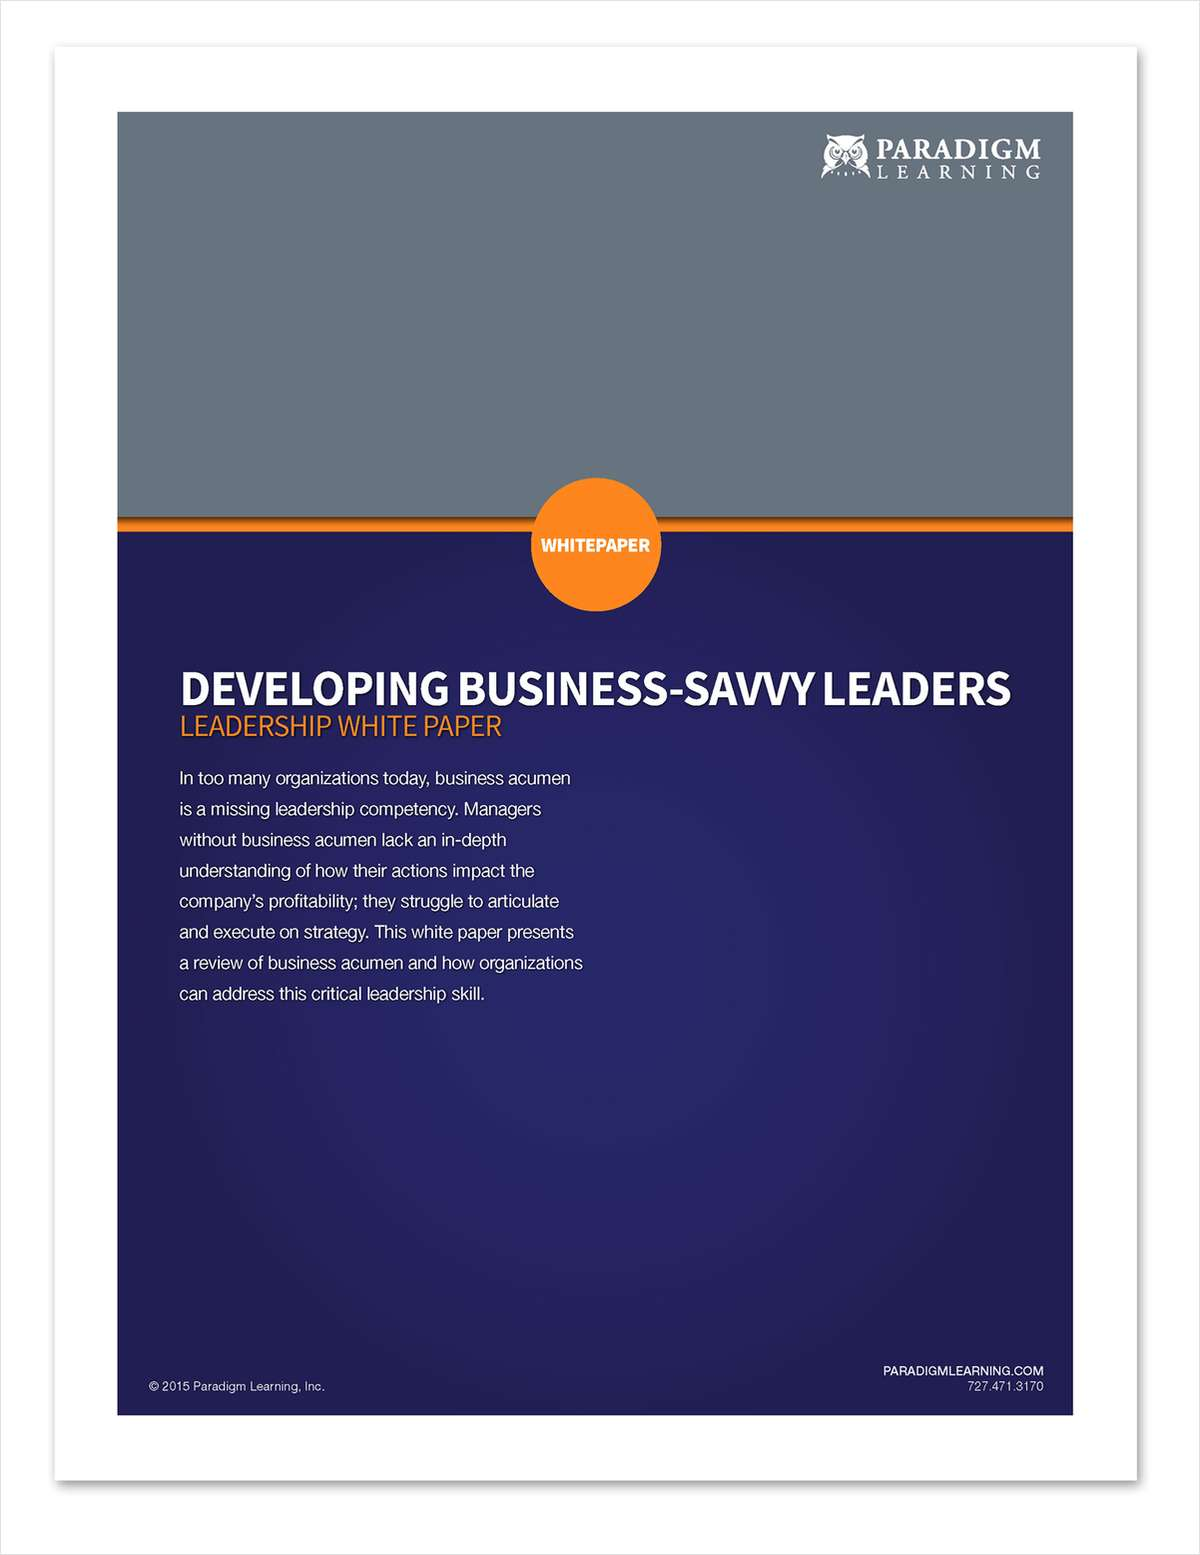 Developing Business-Savvy Leaders